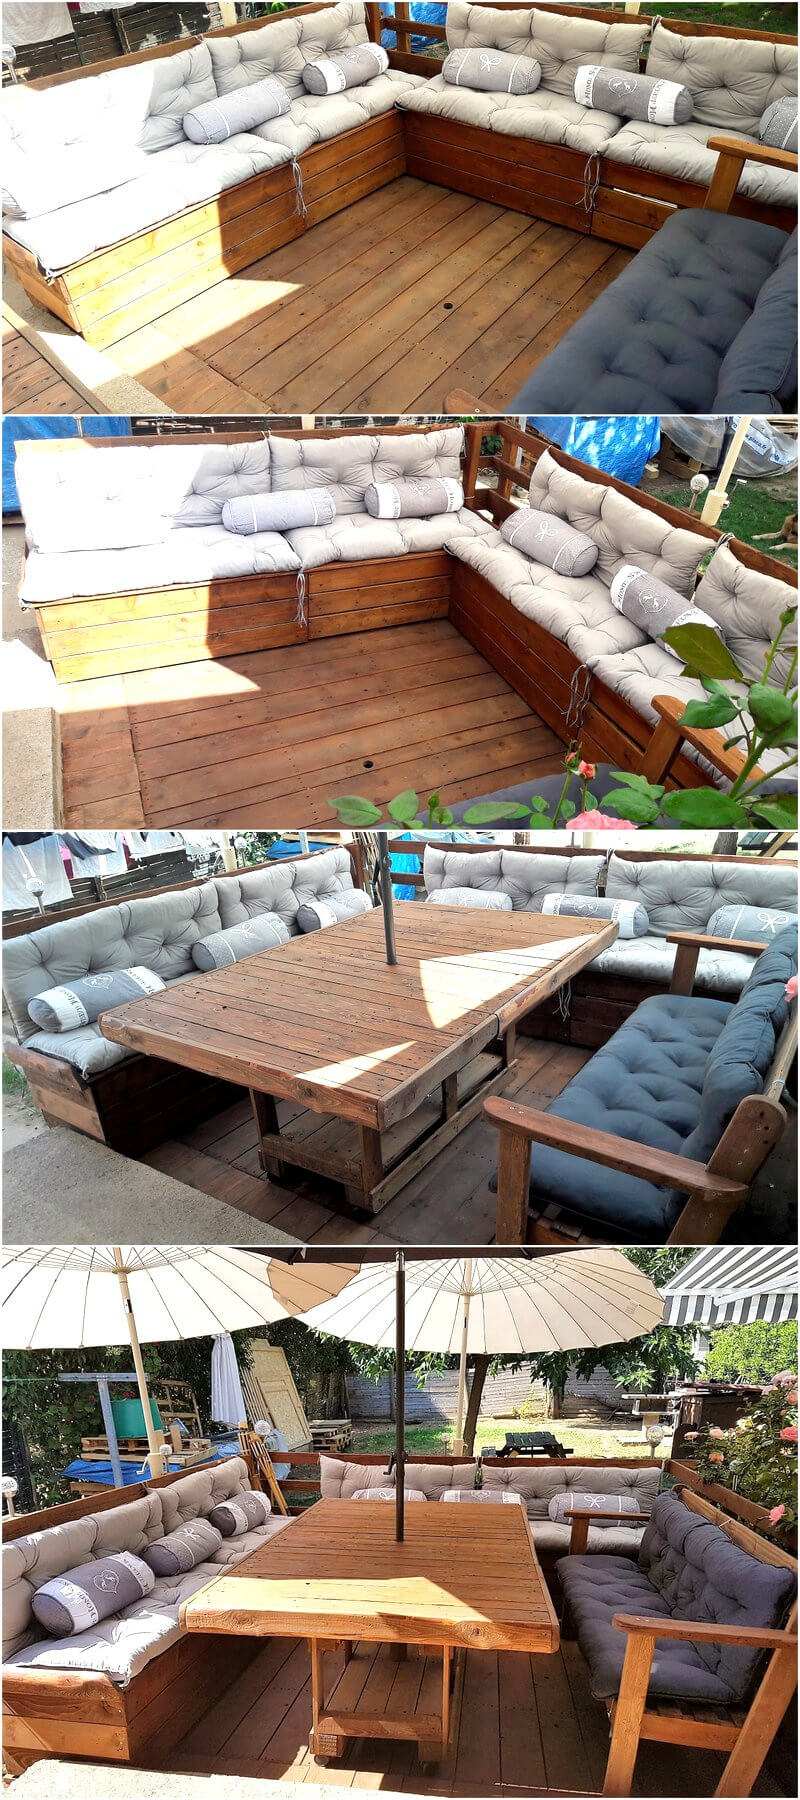 repurposed wooden pallet patio terrace with furniture